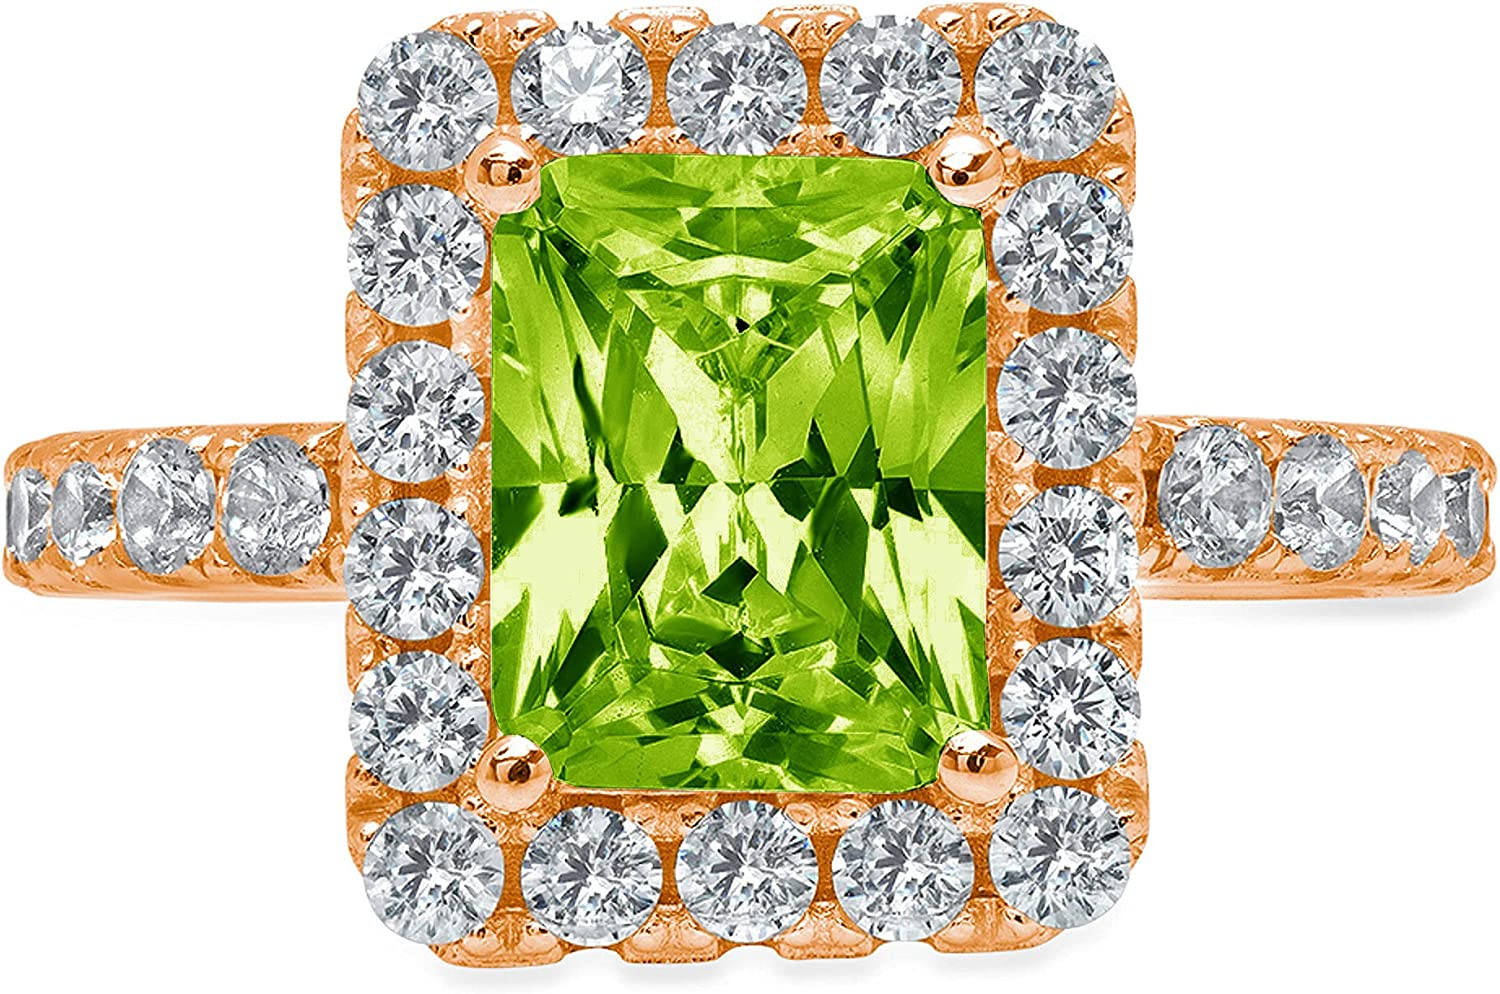 Clara Pucci 4 Brilliant Emerald Cut Solitaire Accent Halo Stunning Genuine Flawless Natural Green Peridot Gem Designer Modern Ring Solid 18K Rose Gold